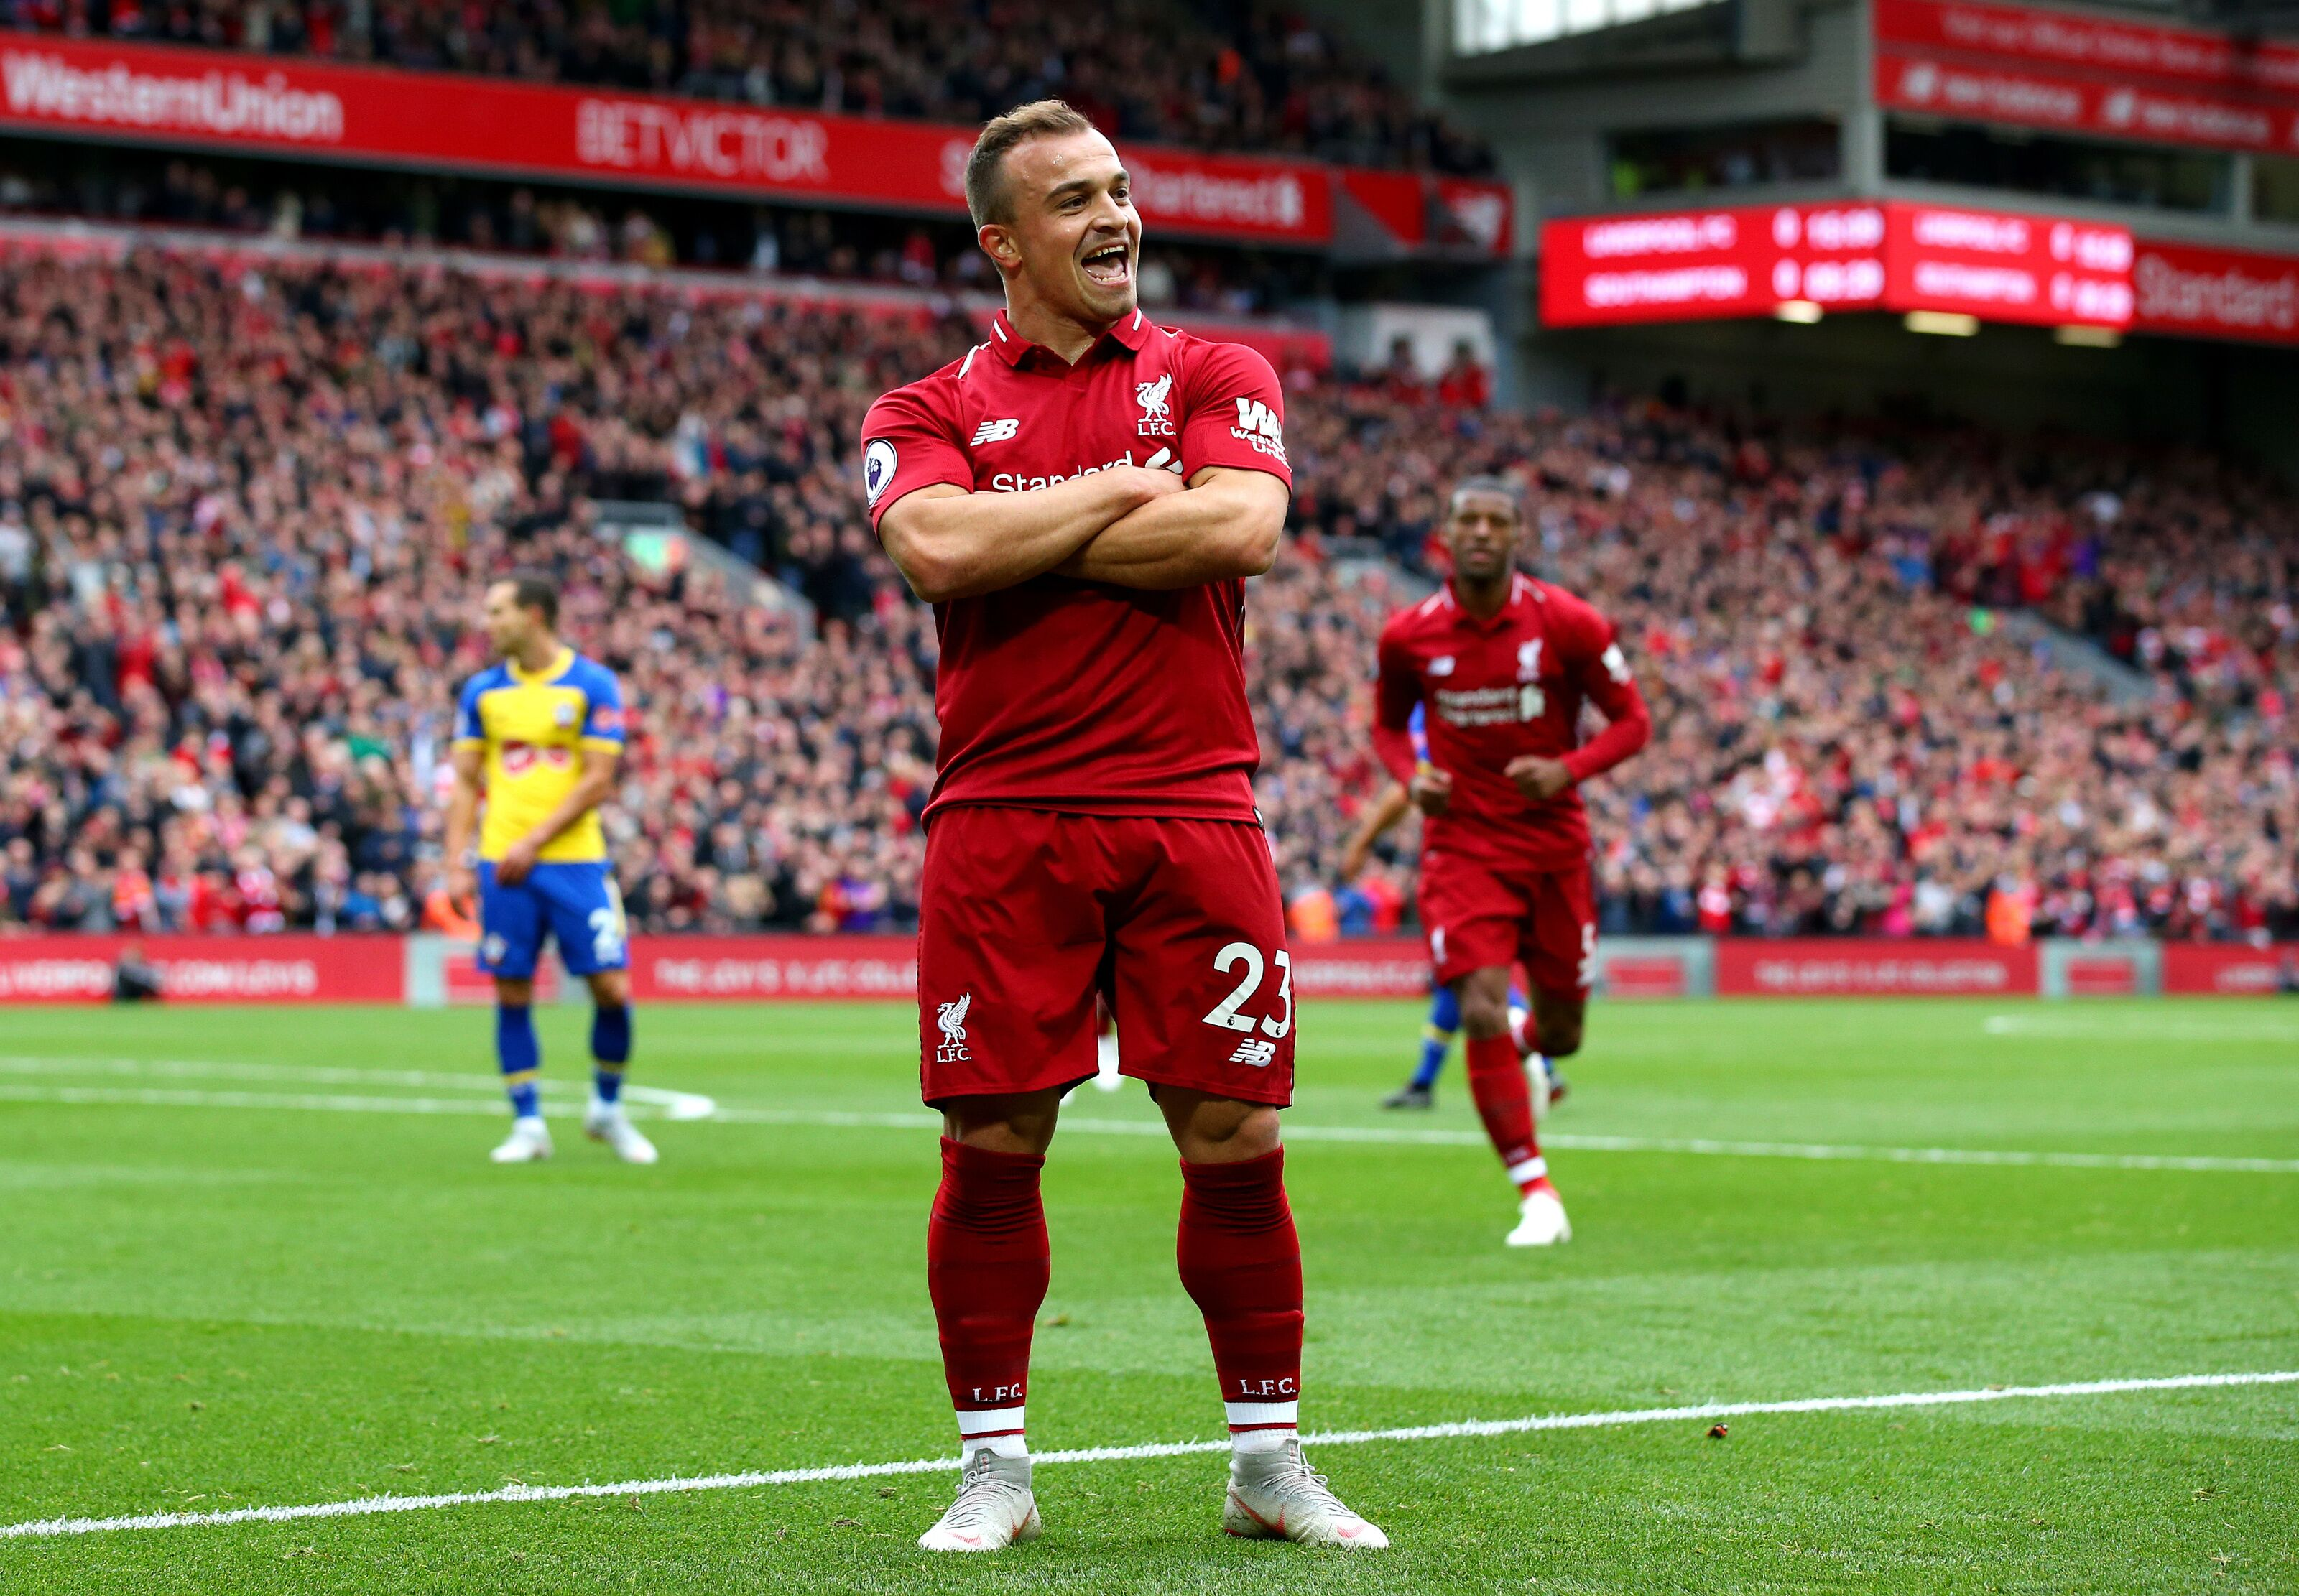 Liverpool 3-0 Southampton: Saints thrashed at Anfield by impressive Reds